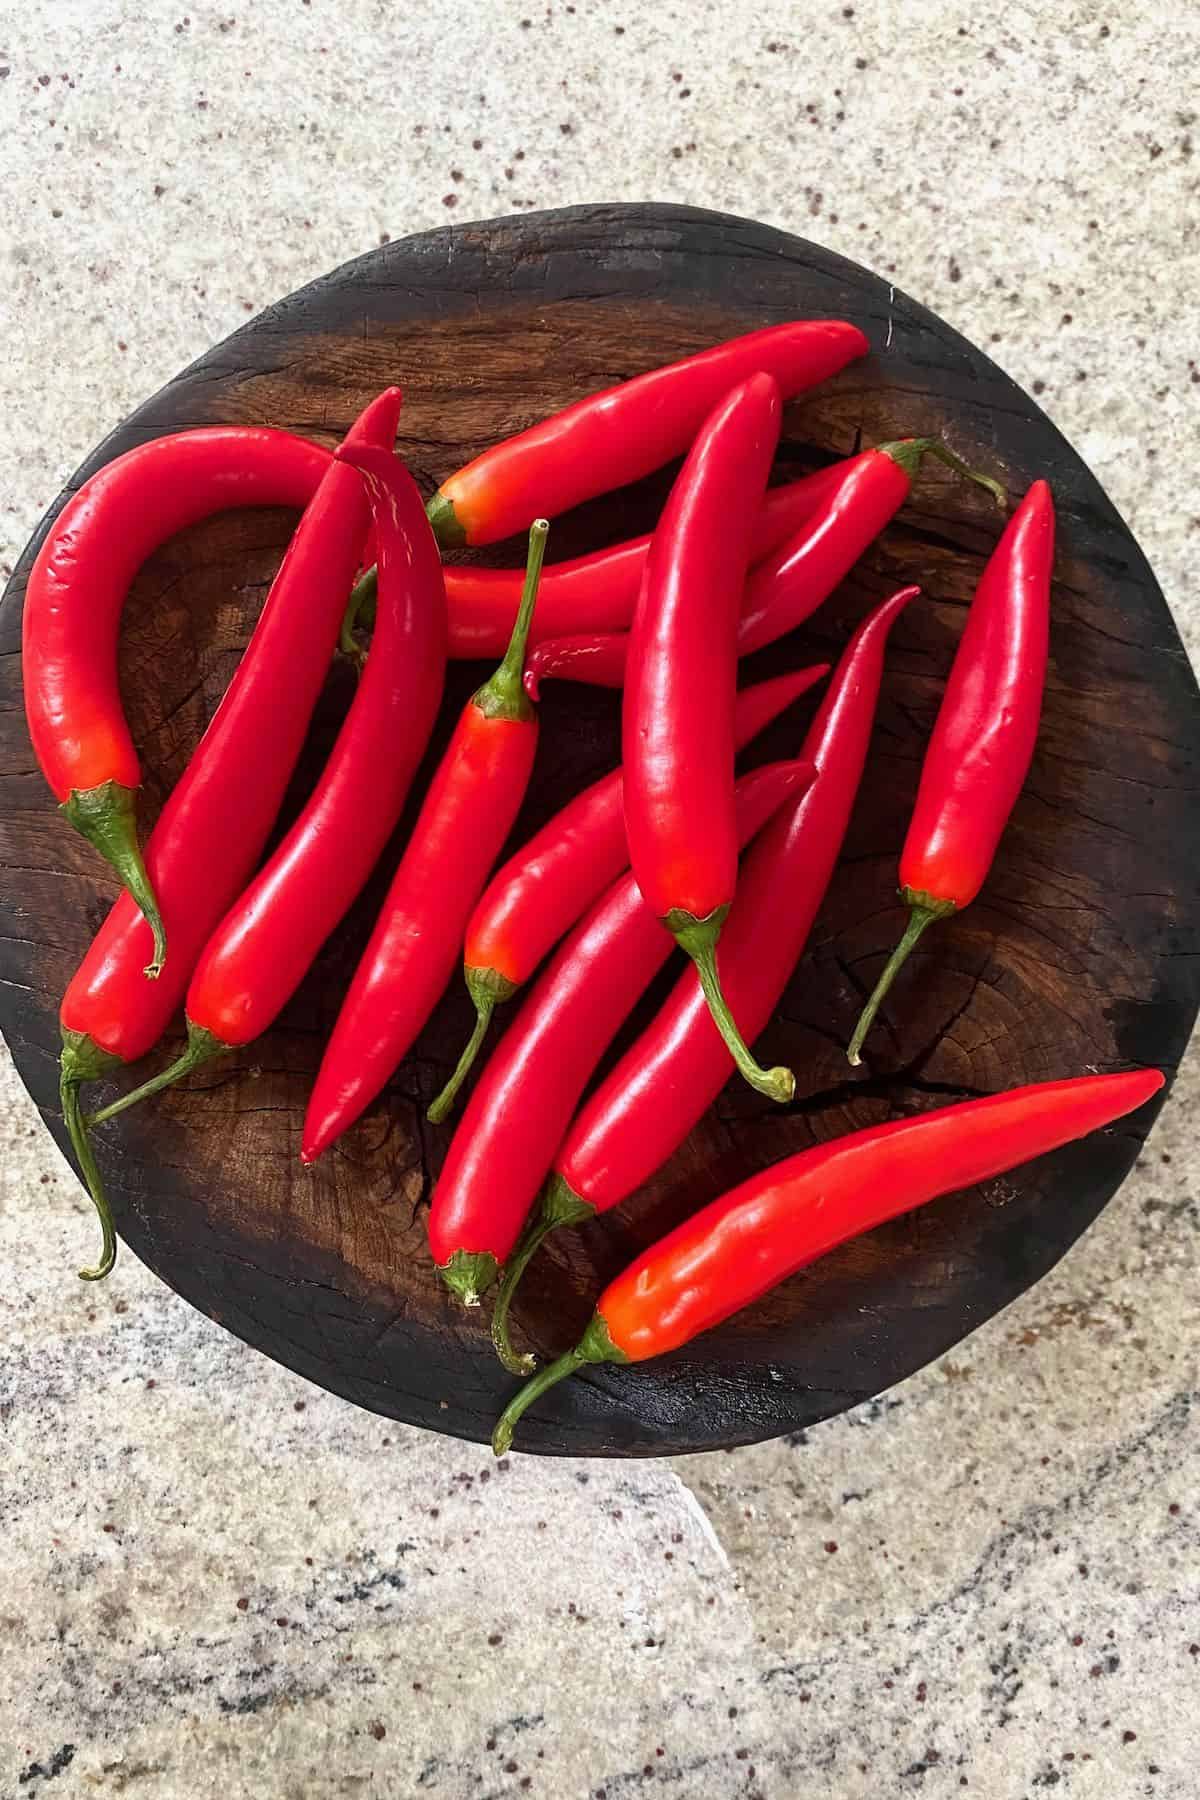 Chili peppers on a board